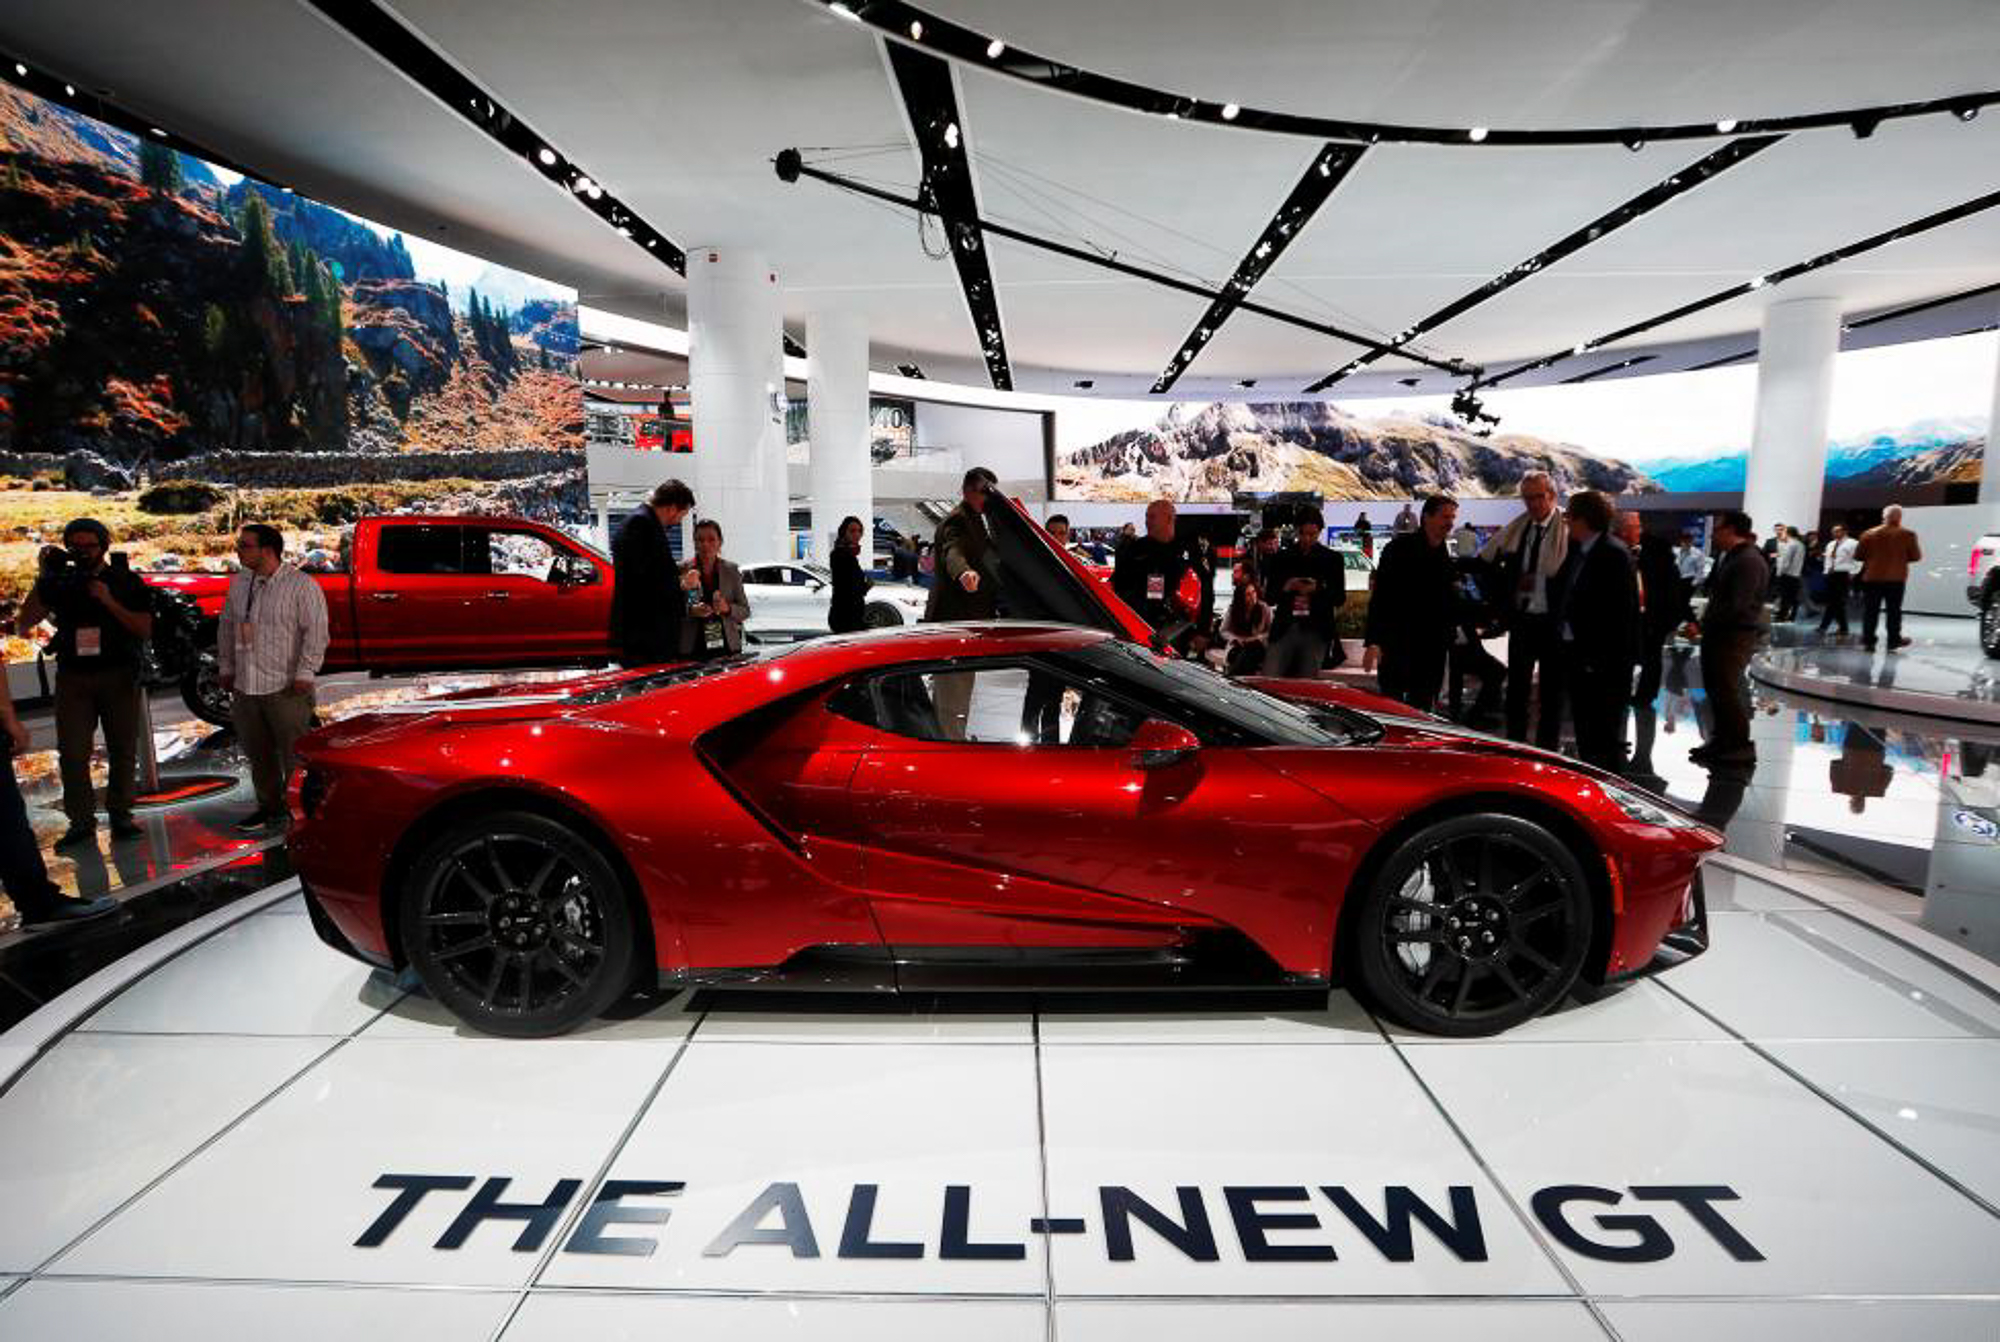 A 2017 Ford GT is displayed. PHOTO: REUTERS